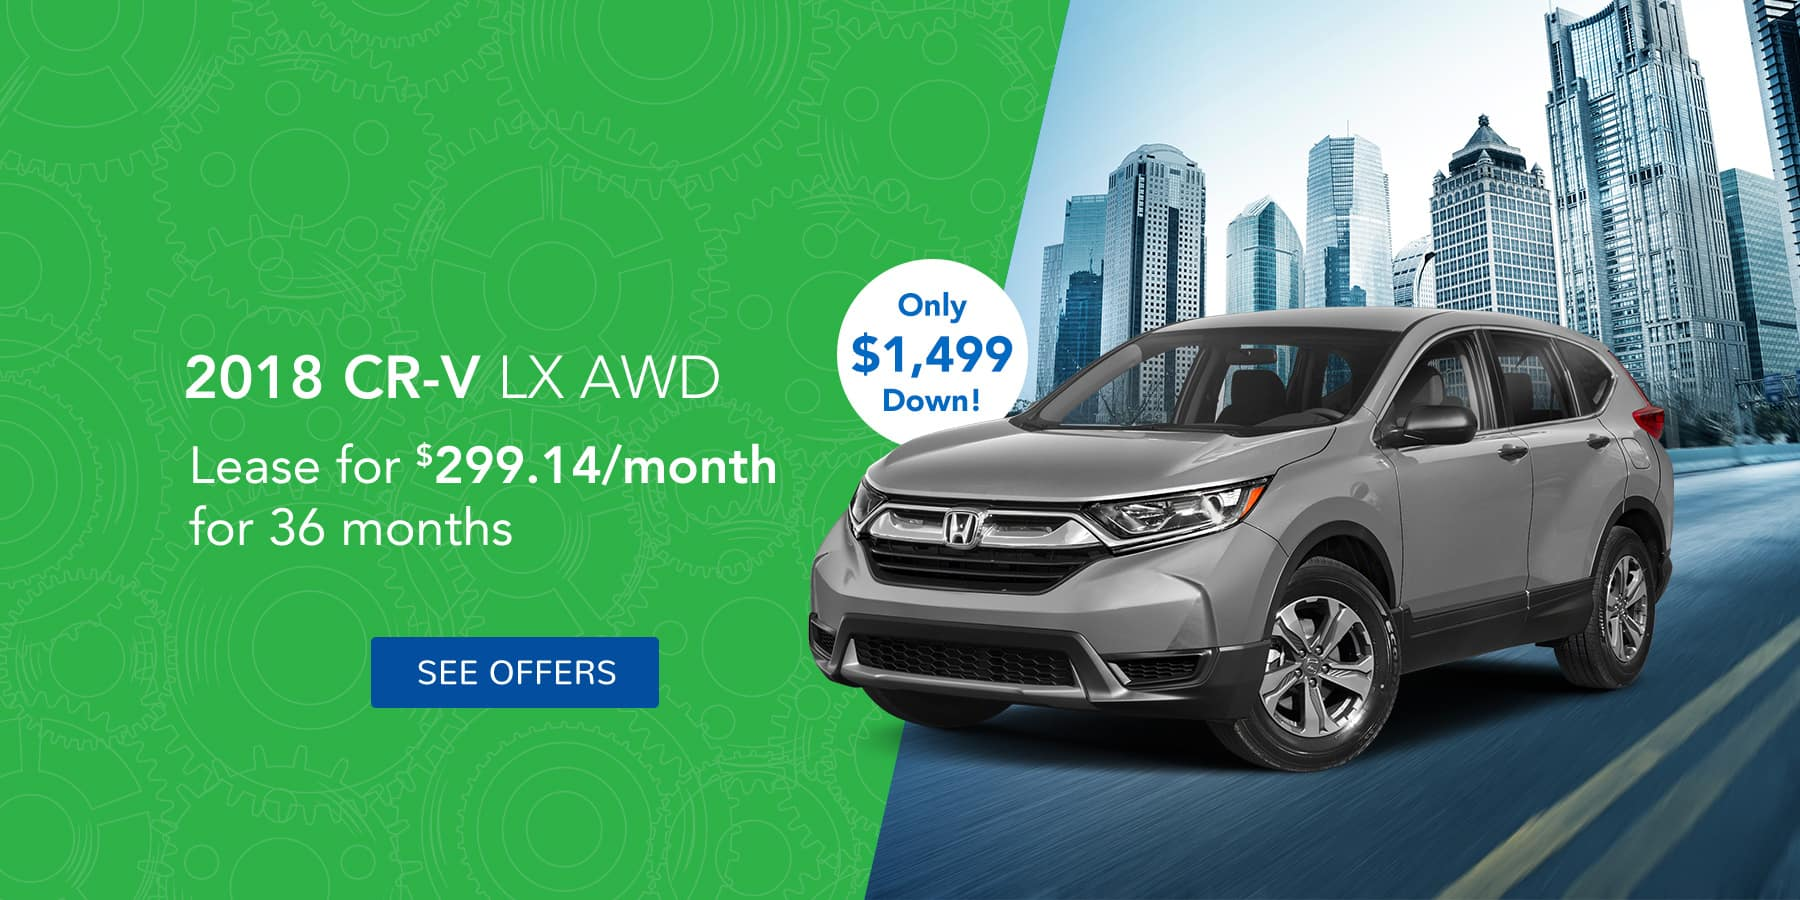 CRV Homepage Offer April